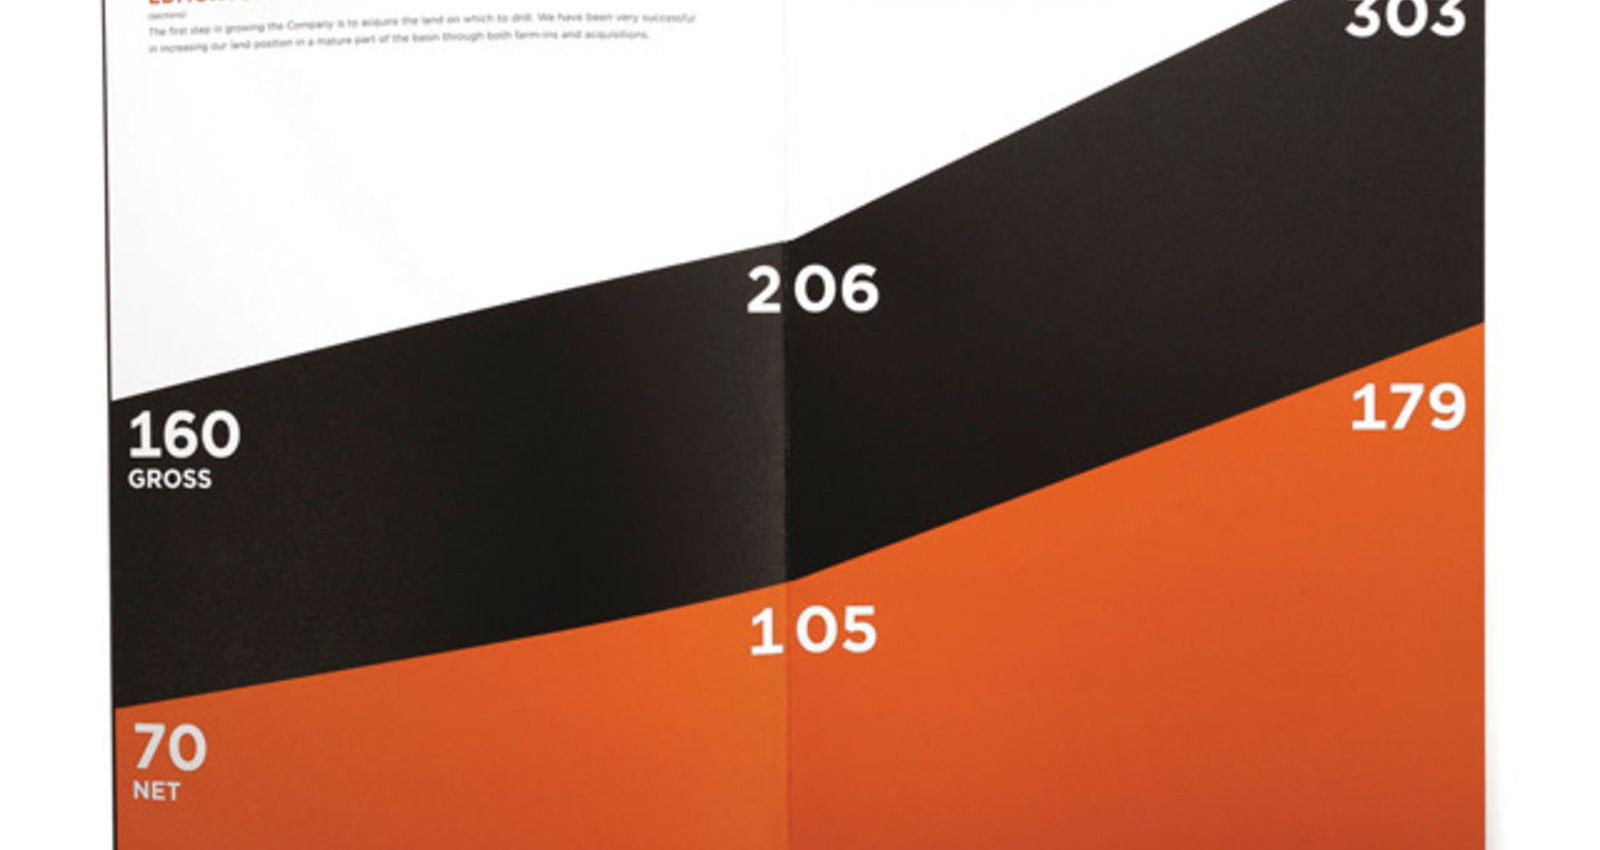 Anderson Energy 2007 Annual Report